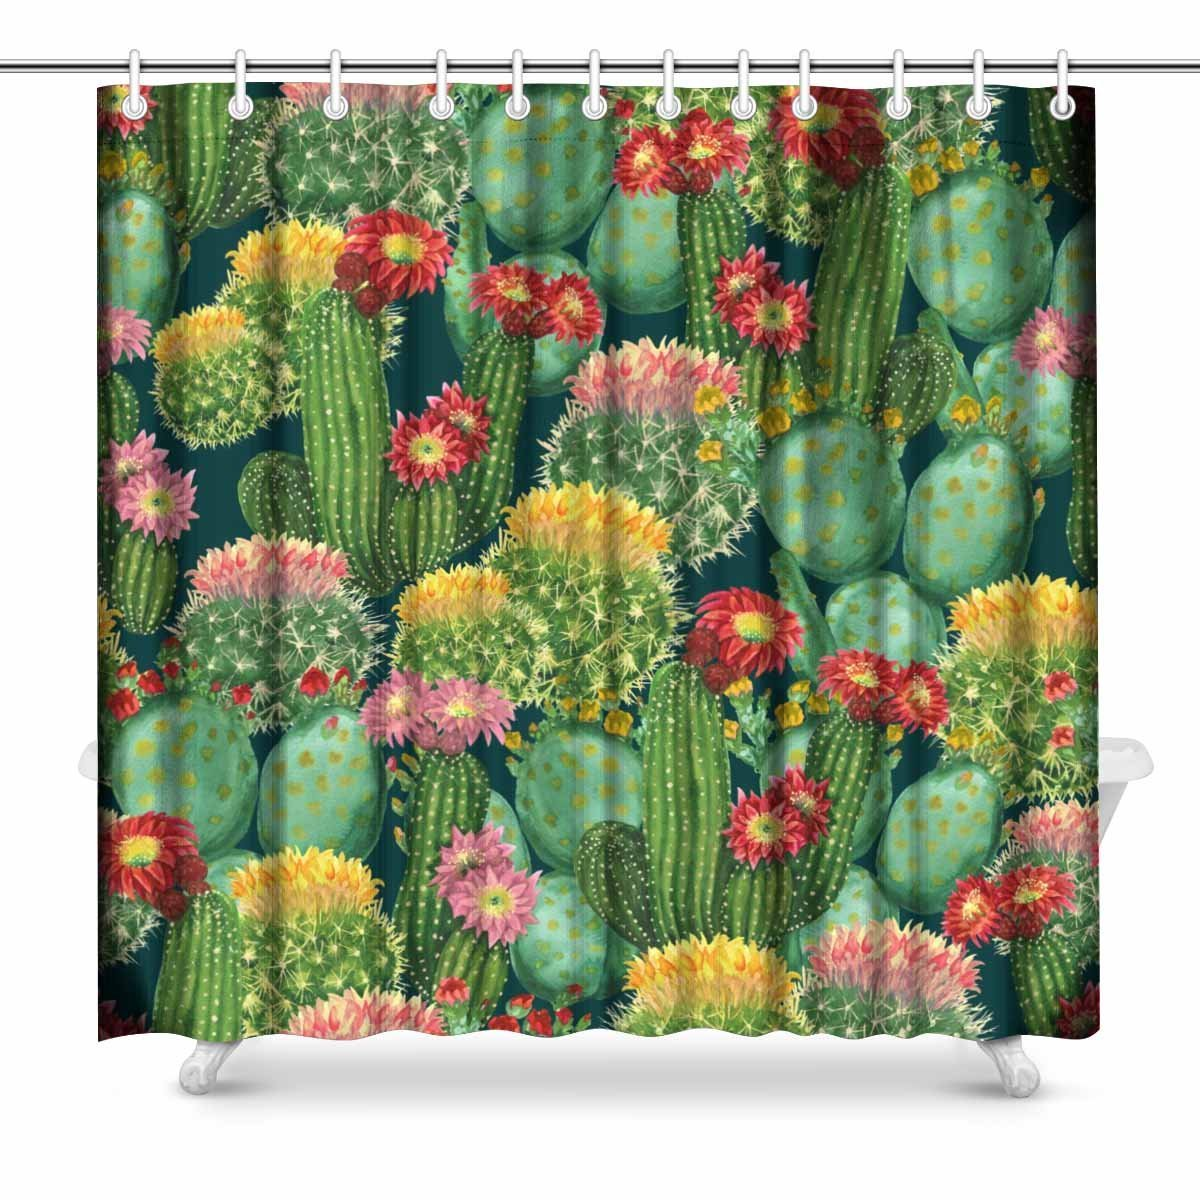 Us 14 18 34 Off Aplysia Blooming Cactus On Dark Green Design Art Print Deco Print Polyester Fabric Shower Curtain 72 X 72 Inches In Shower Curtains